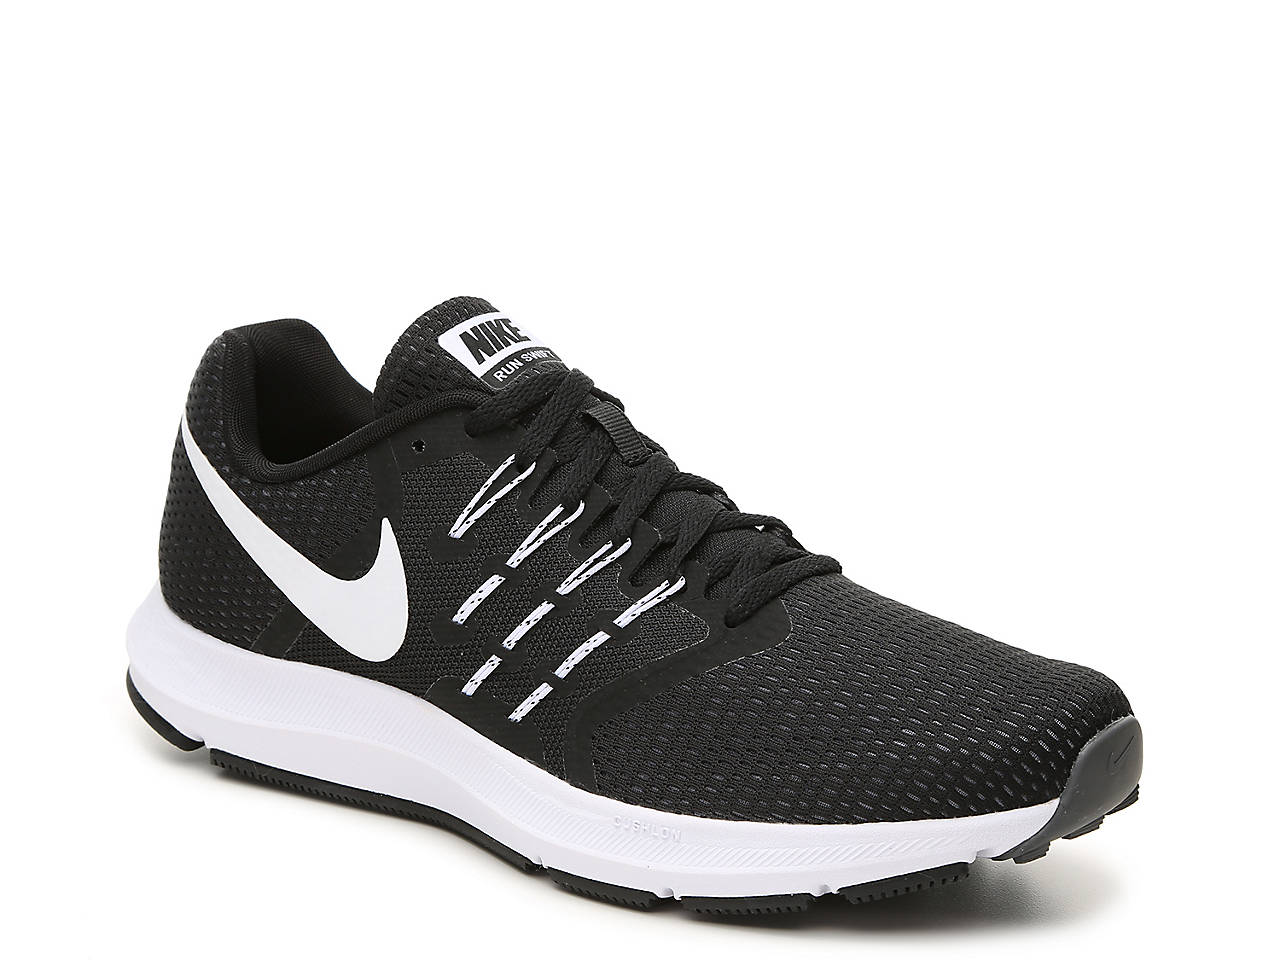 214702f8f78 Nike Run Swift Lightweight Running Shoe - Men s Men s Shoes